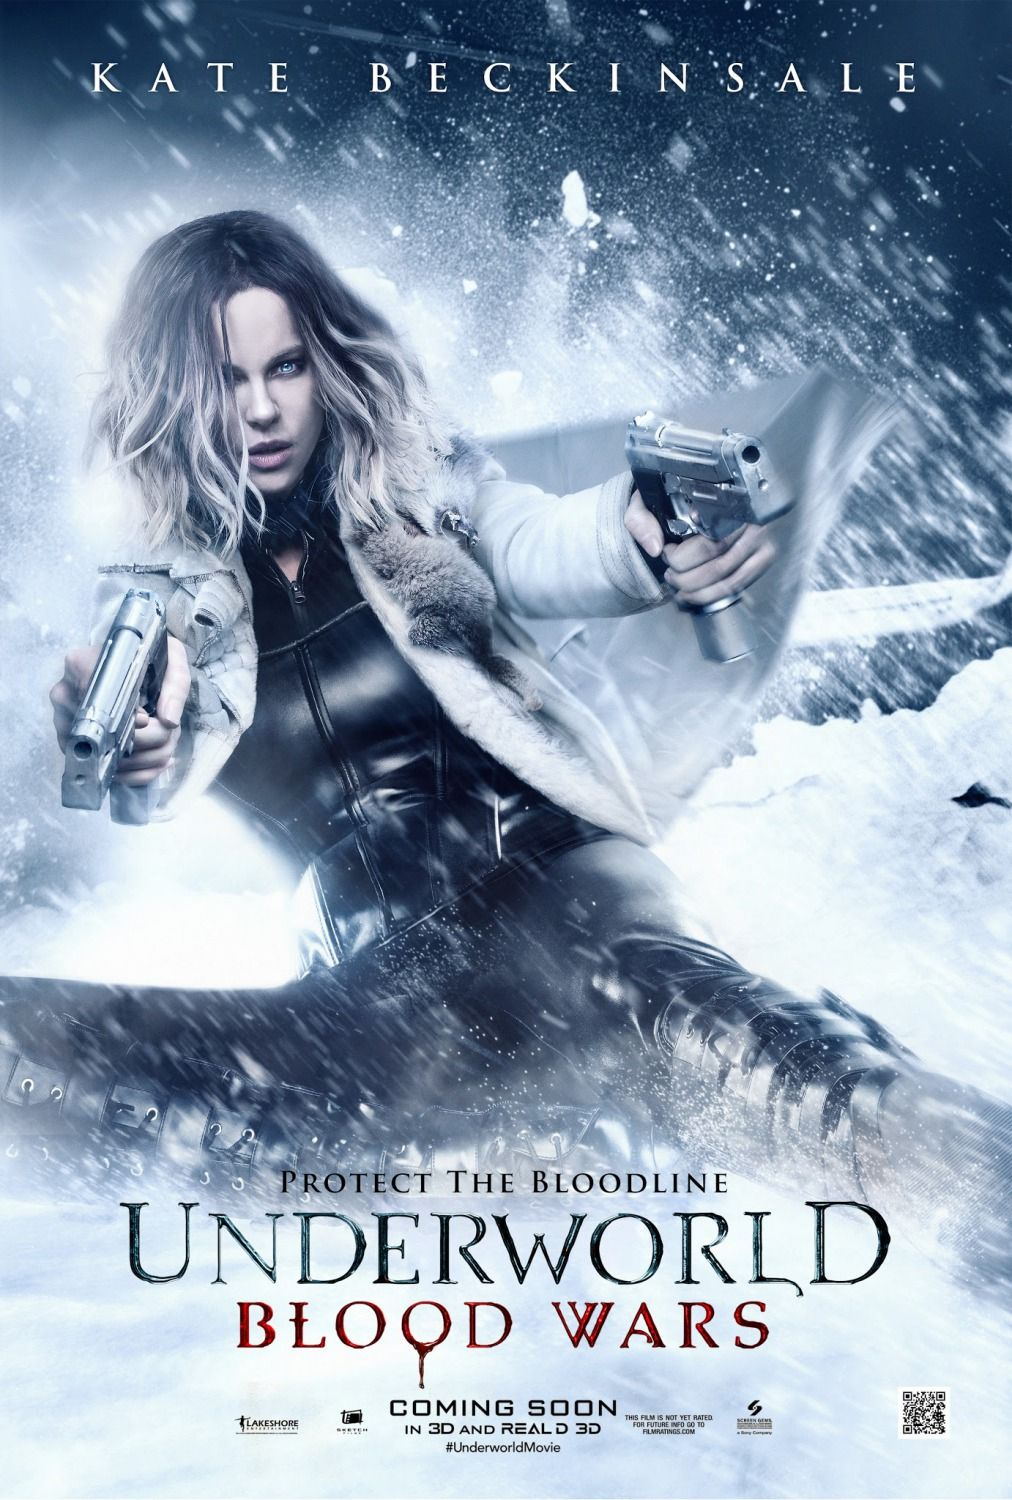 New Underworld Blood Wars Poster Tells Us To Protect The